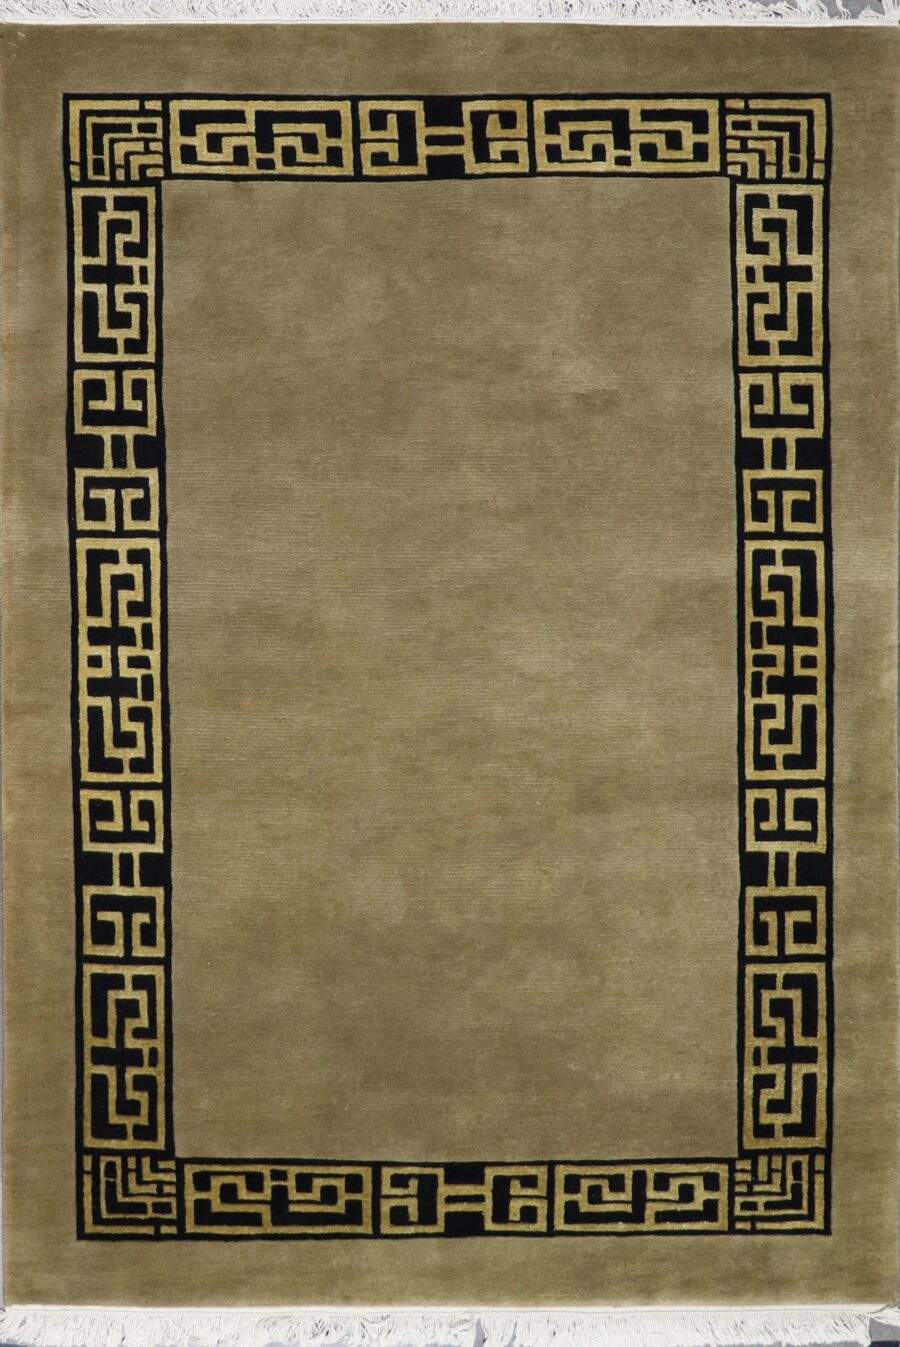 """4'7""""x7'11"""" Decorative Greek Key Nepal Wool Hand-Knotted Rug - Direct Rug Import 